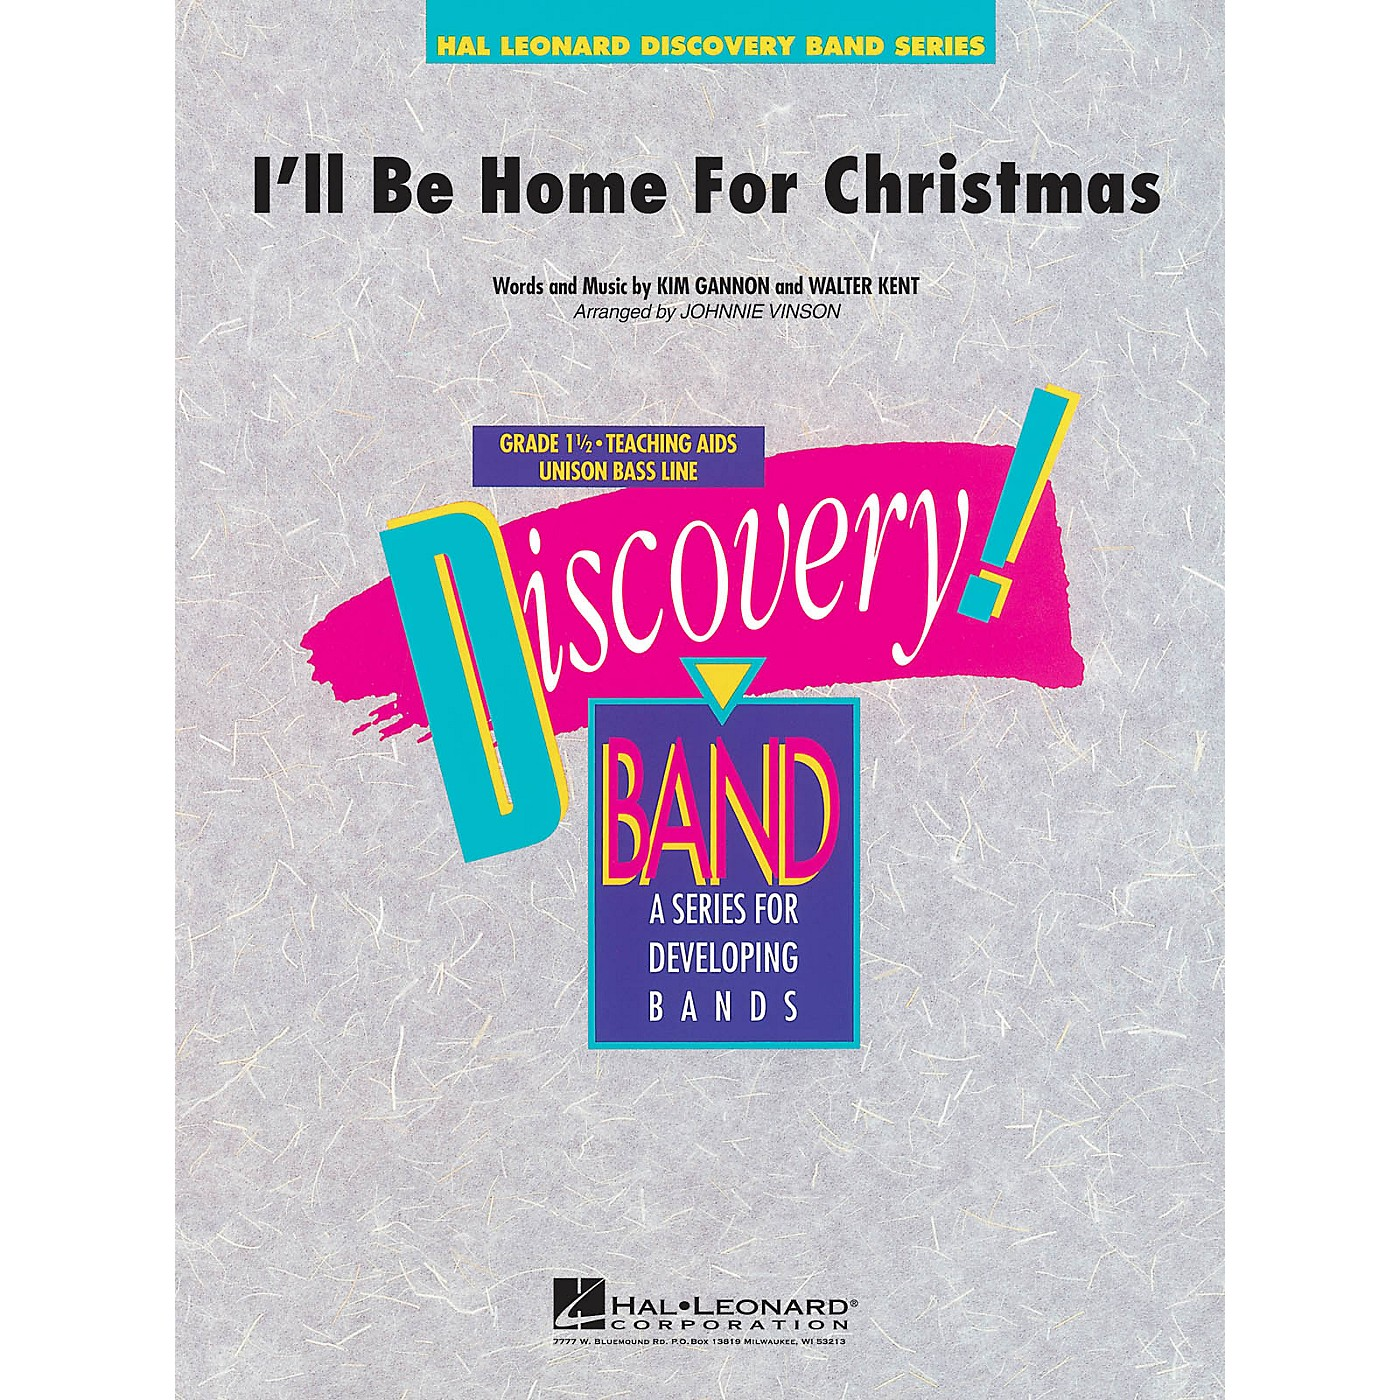 Hal Leonard I'll Be Home for Christmas Concert Band Level 1.5 Arranged by Johnnie Vinson thumbnail